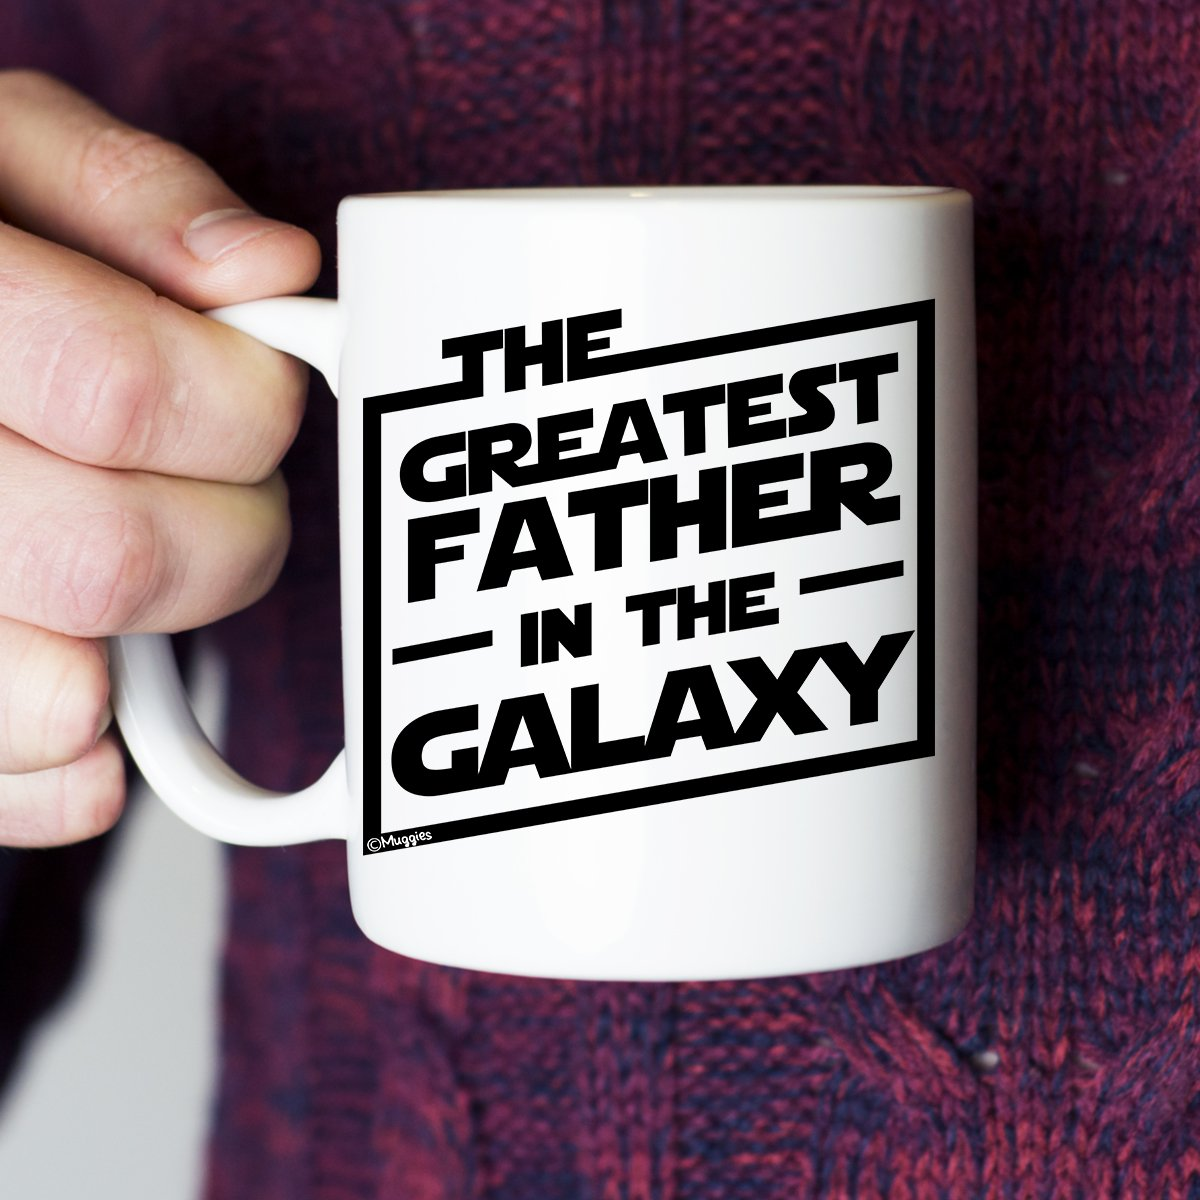 Muggies Greatest Father in The Galaxy 11oz. Coffee Tea Mug. Unique Funny Christmas, Xmas, Birthday, for Him - Super Star Men, Dad, Husband by GENUTRI (Image #3)